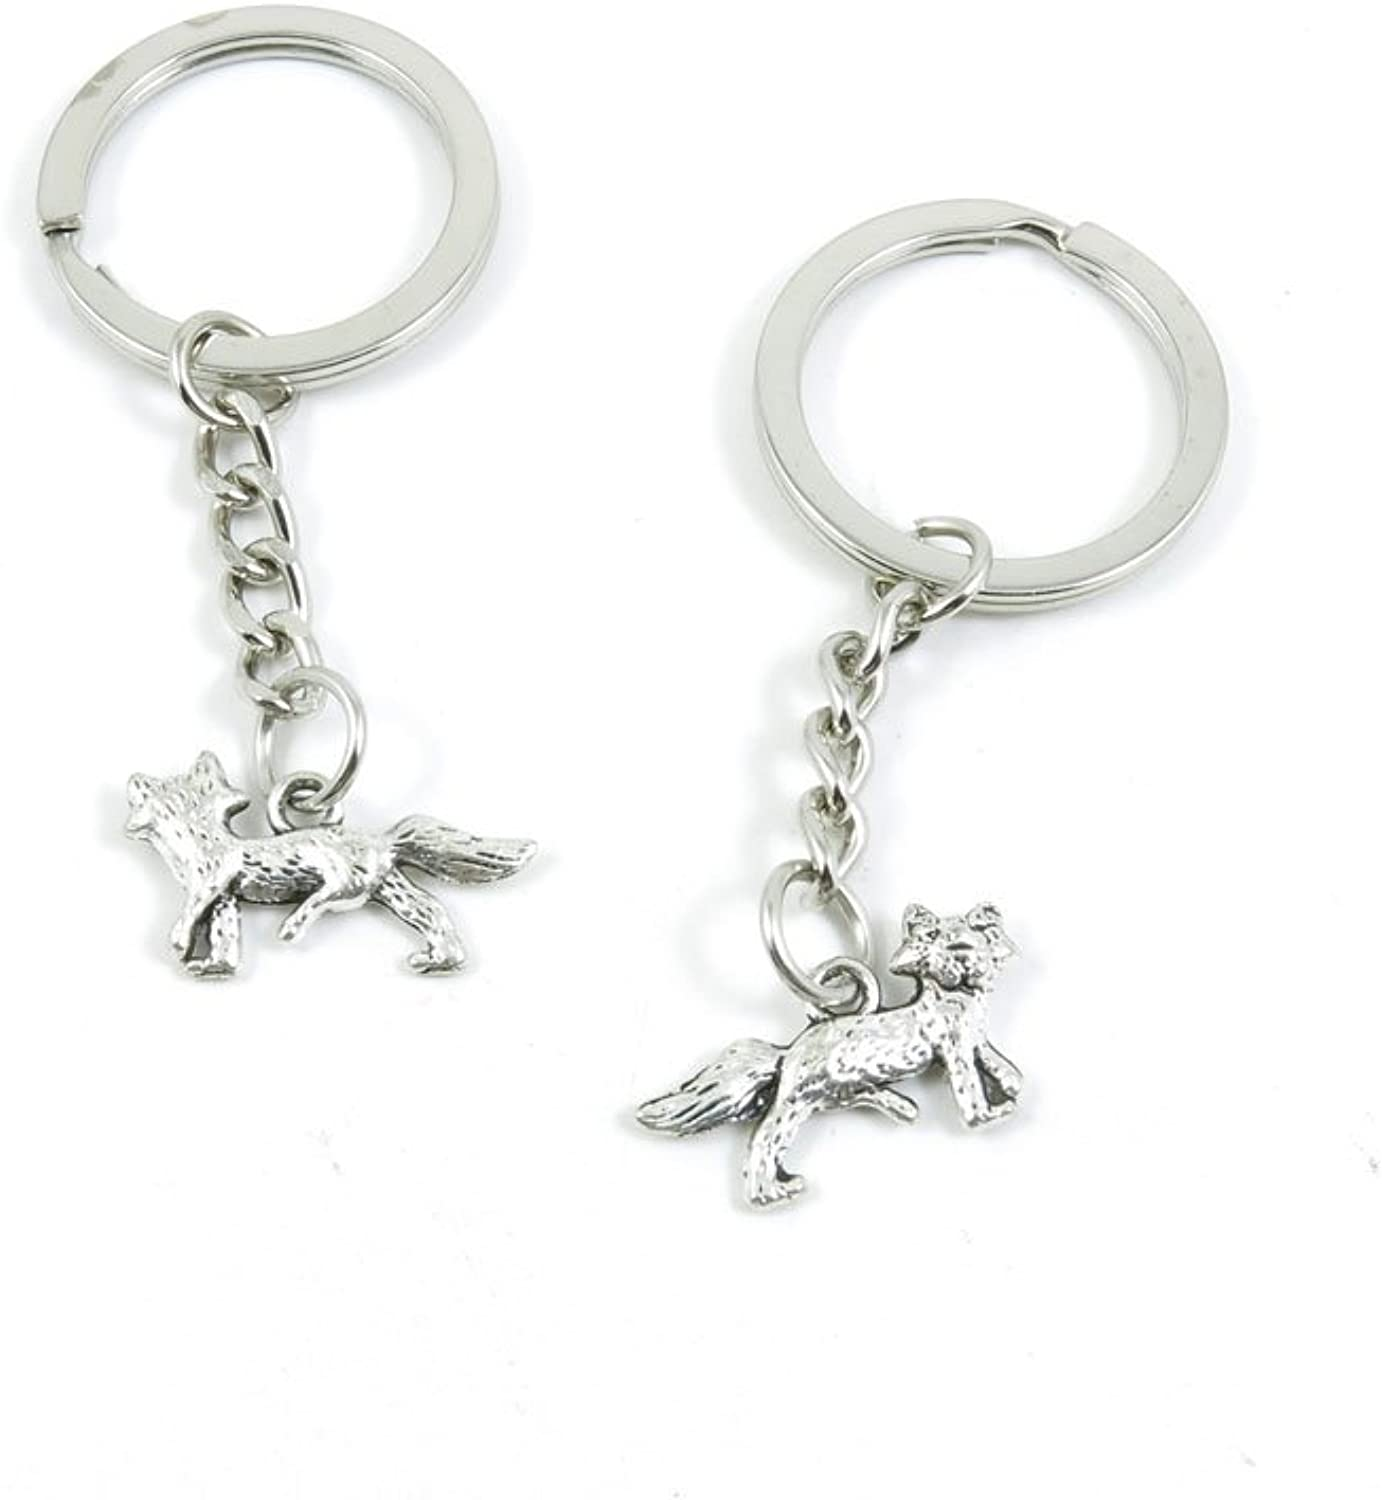 220 Pieces Fashion Jewelry Keyring Keychain Door Car Key Tag Ring Chain Supplier Supply Wholesale Bulk Lots E7UU3 Hound Dog